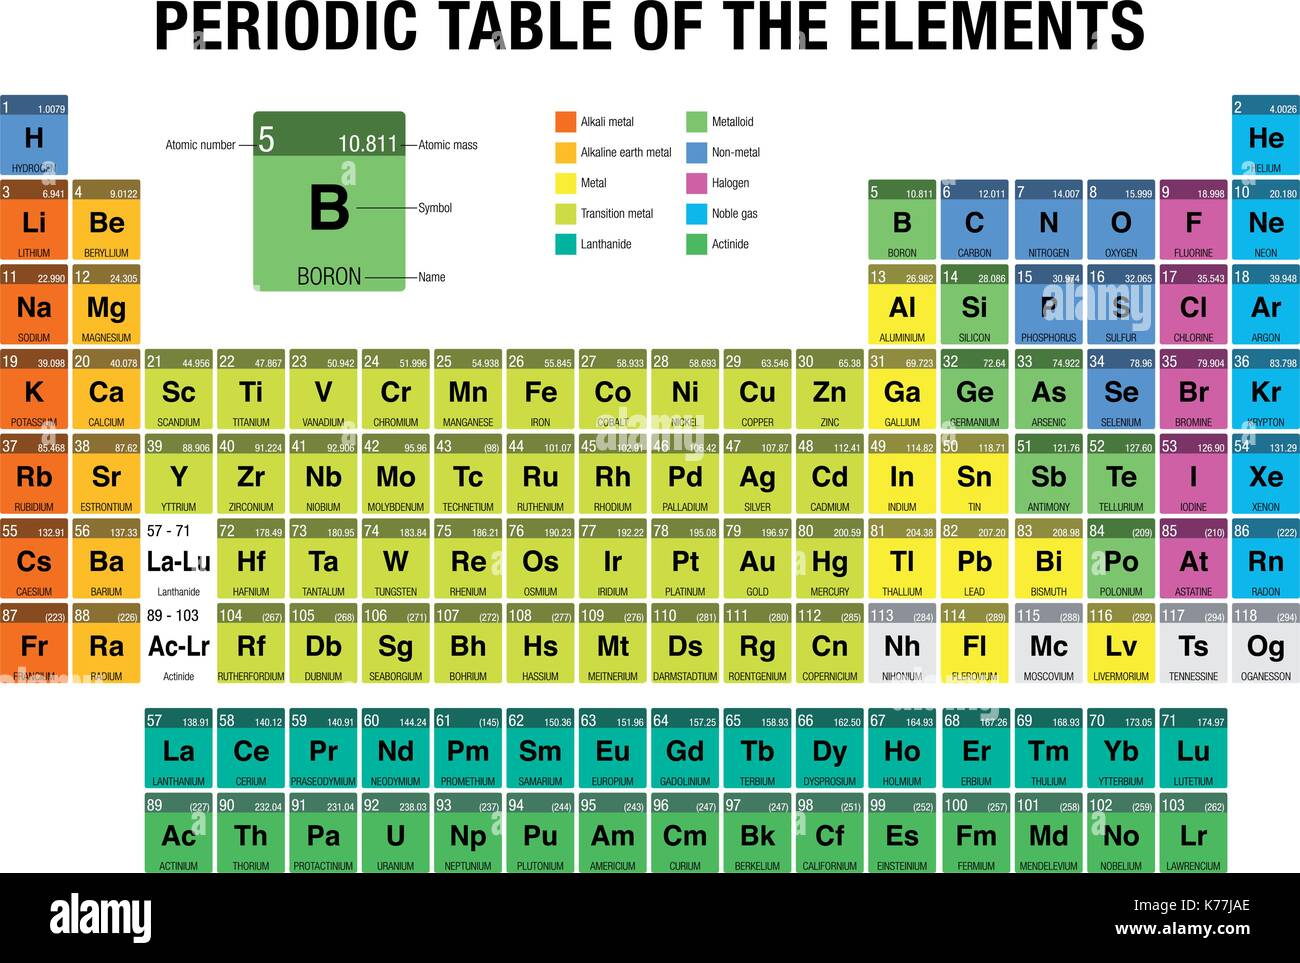 Diagram periodic table elements stock photos diagram periodic periodic table of the elements with the 4 new elements included on november 28 2016 gamestrikefo Choice Image